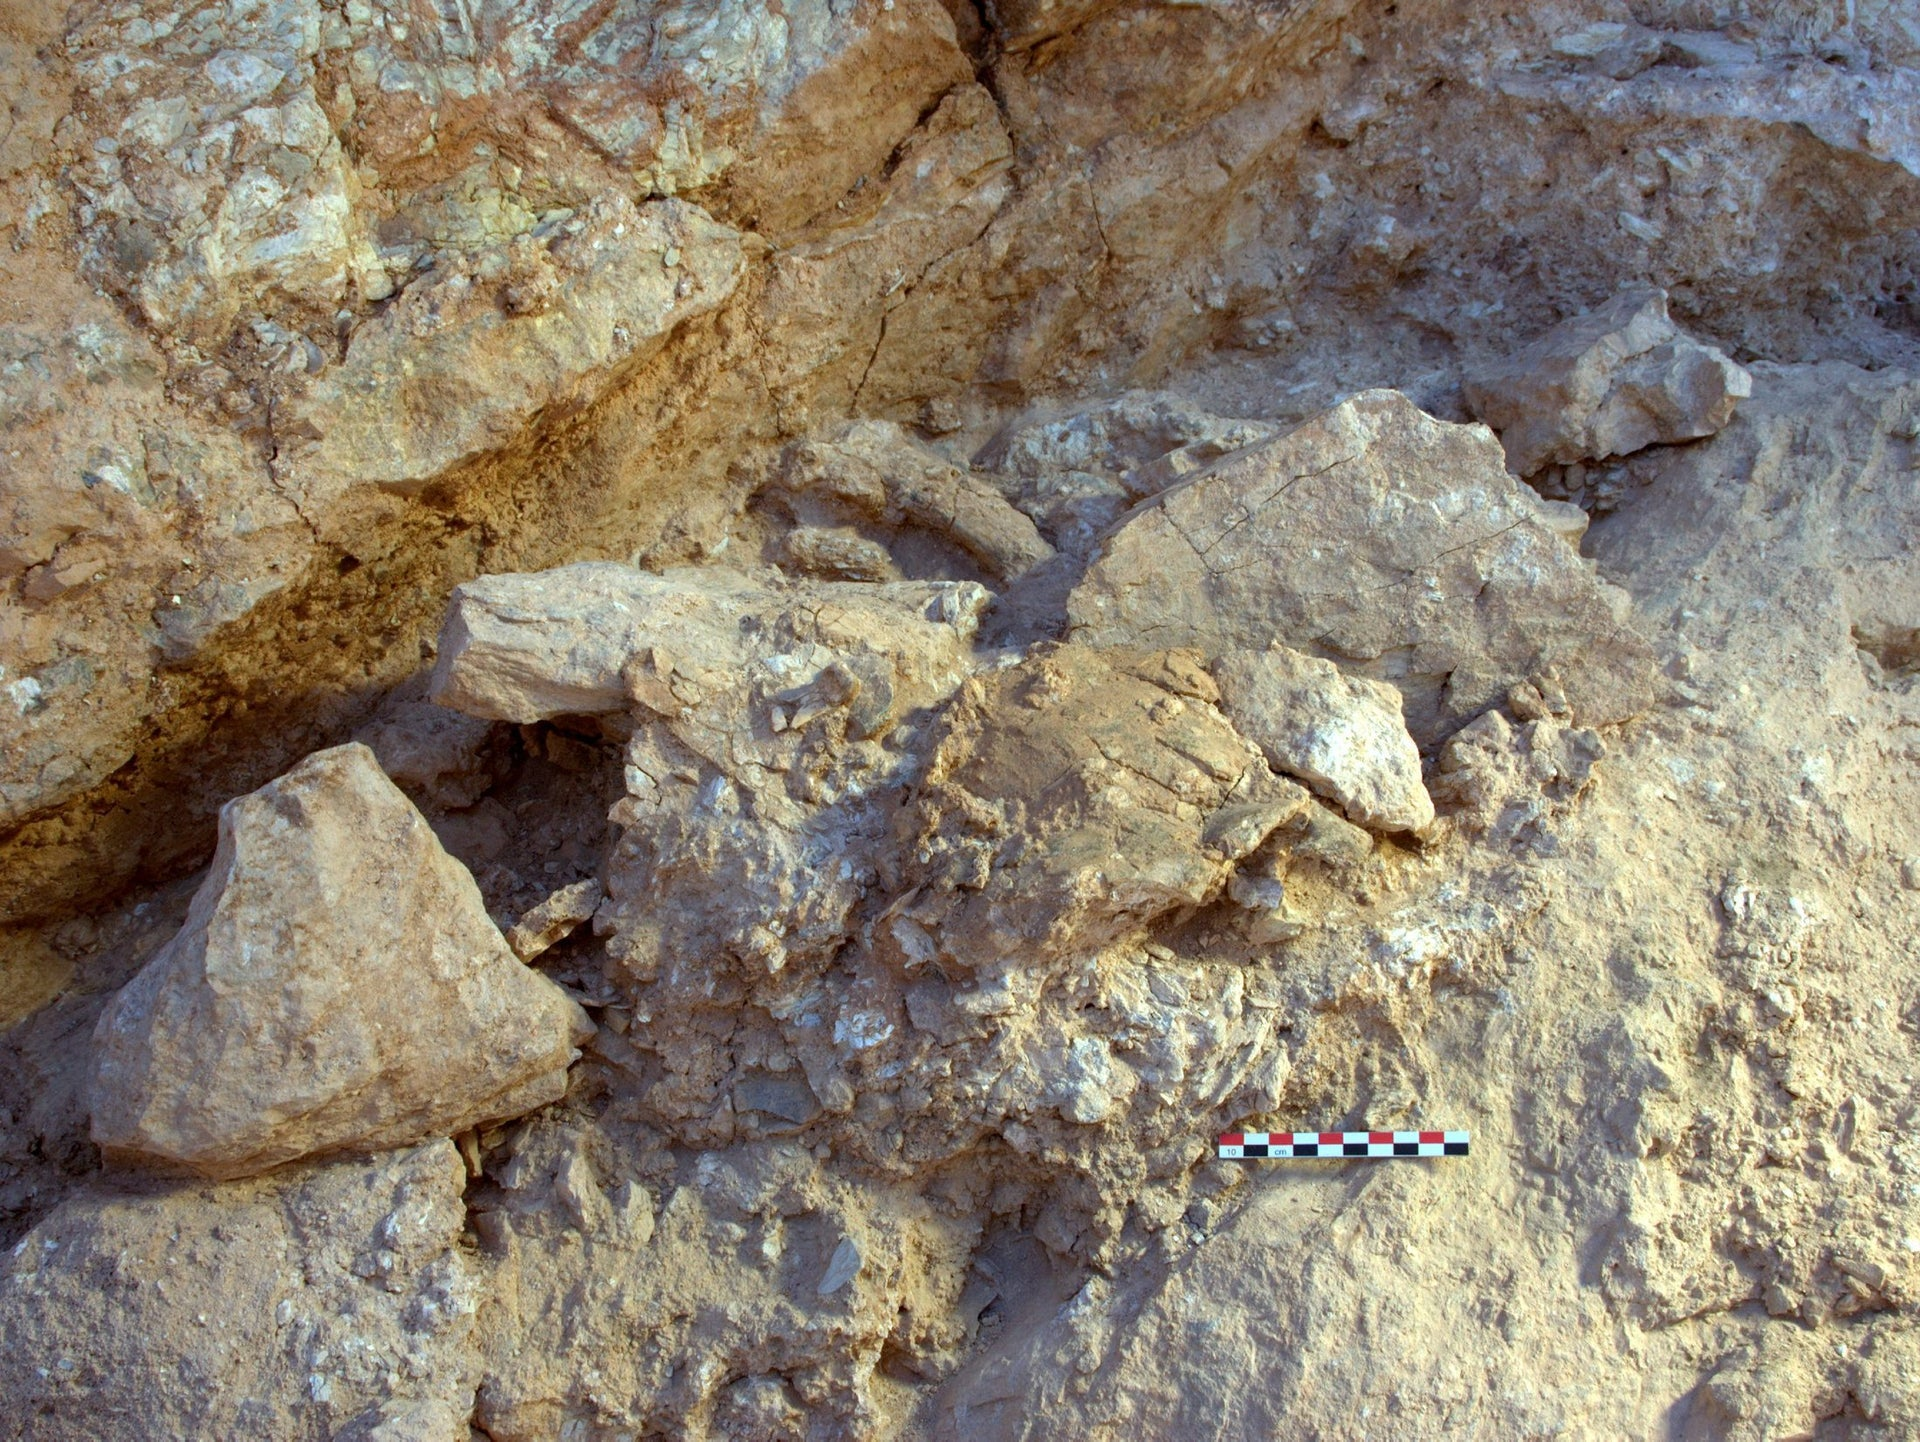 Two of the new Jebel Irhoud (Morocco) fossils in situ as they were discovered during excavation. In the center of the image, in a slightly more yellow brown tone, is the crushed top of a human skull (Irhoud 10) and visible just above this is a partial femur (Irhoud 13) resting against the back wall.